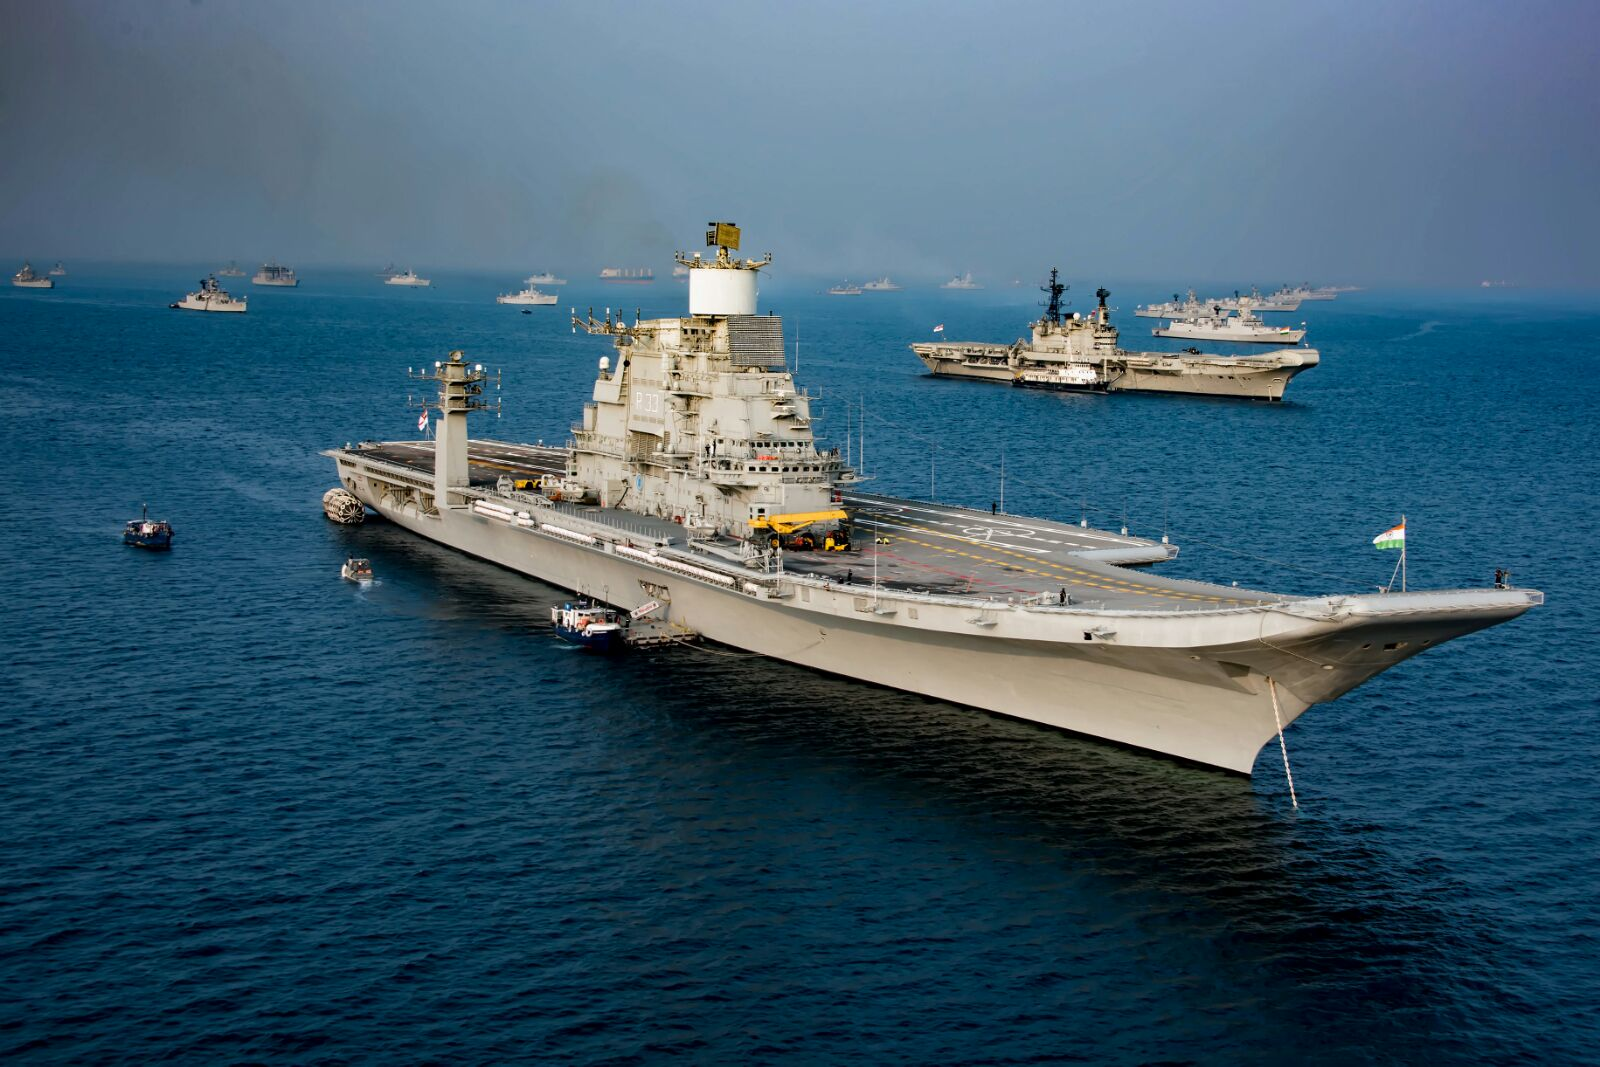 GRSE Shipyard, Goa Shipyard, and Hindustan Shipyard held talks with Russia's Morinformsystem-Agat on new joint projects for the Indian Navy.